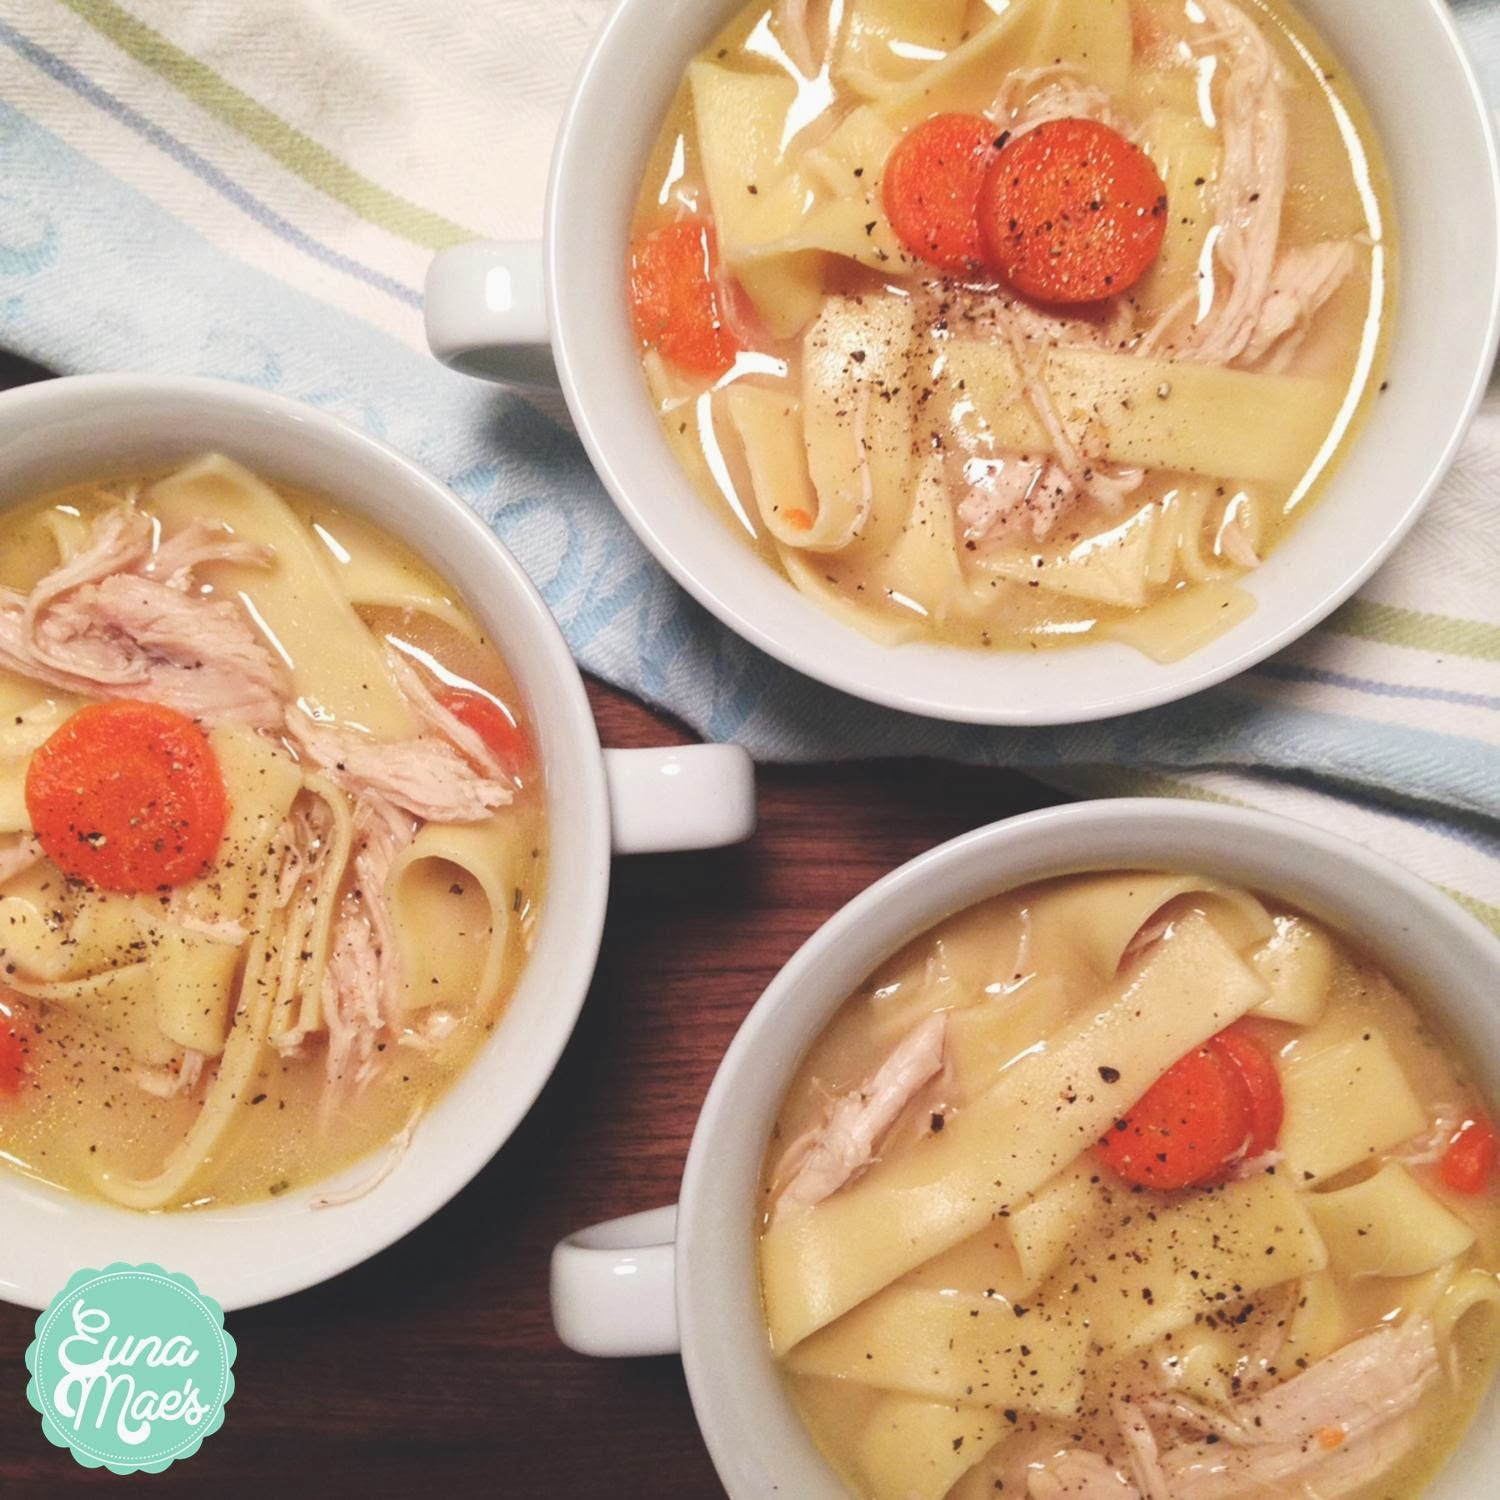 Euna Mae's : easy homemade chicken noodle soup